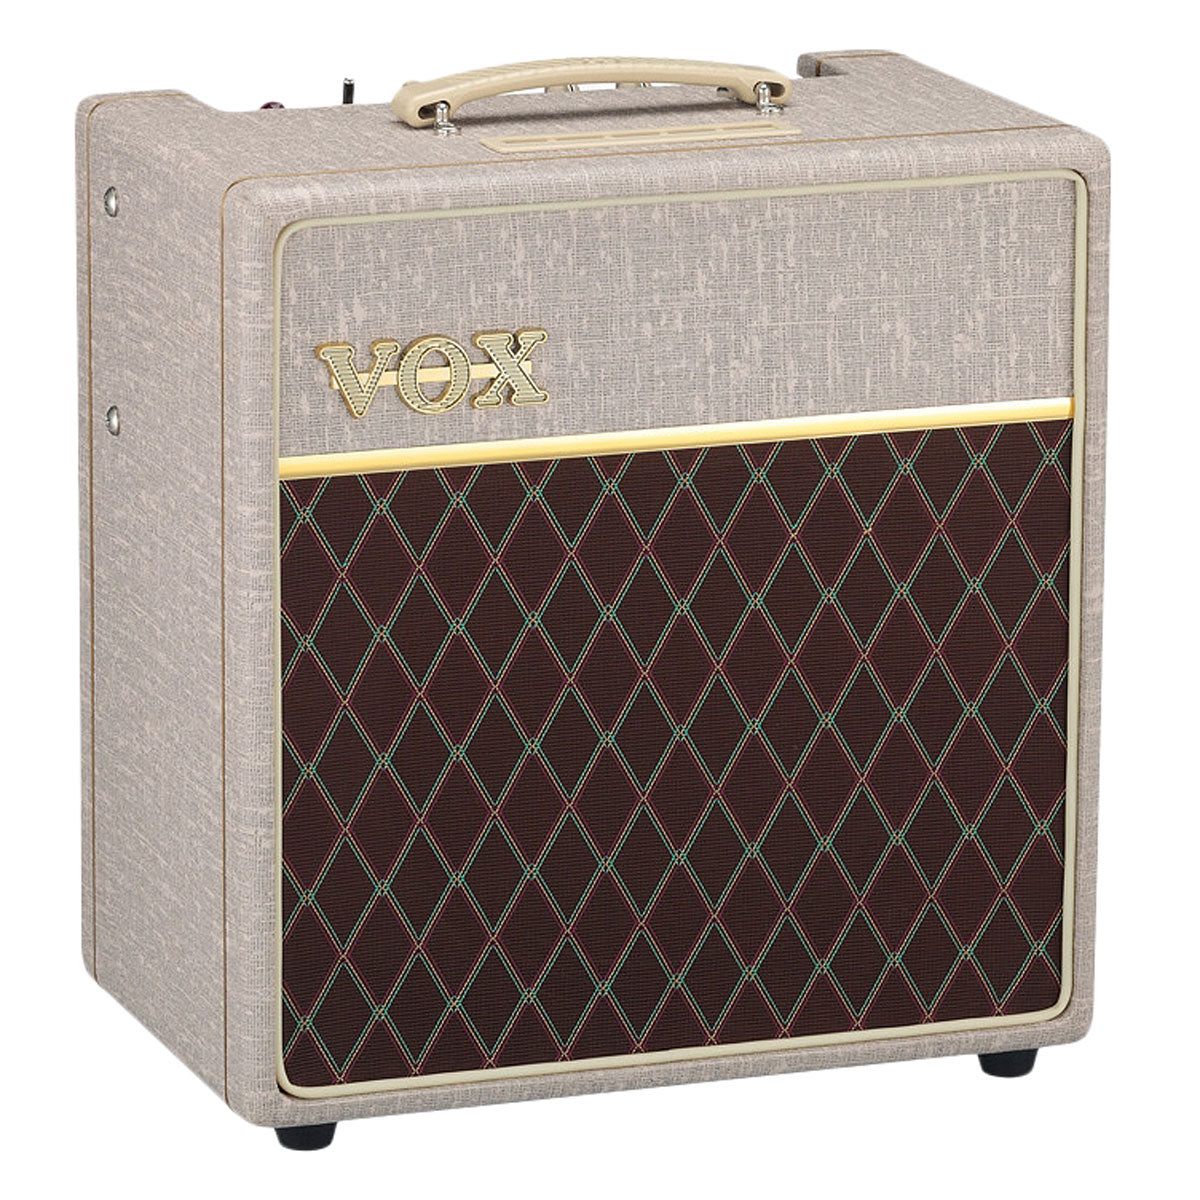 "Vox AC4HW1 - Hand-wired combo, 1 x 12"""" Celestion Greenback speaker, fawn vinyl"